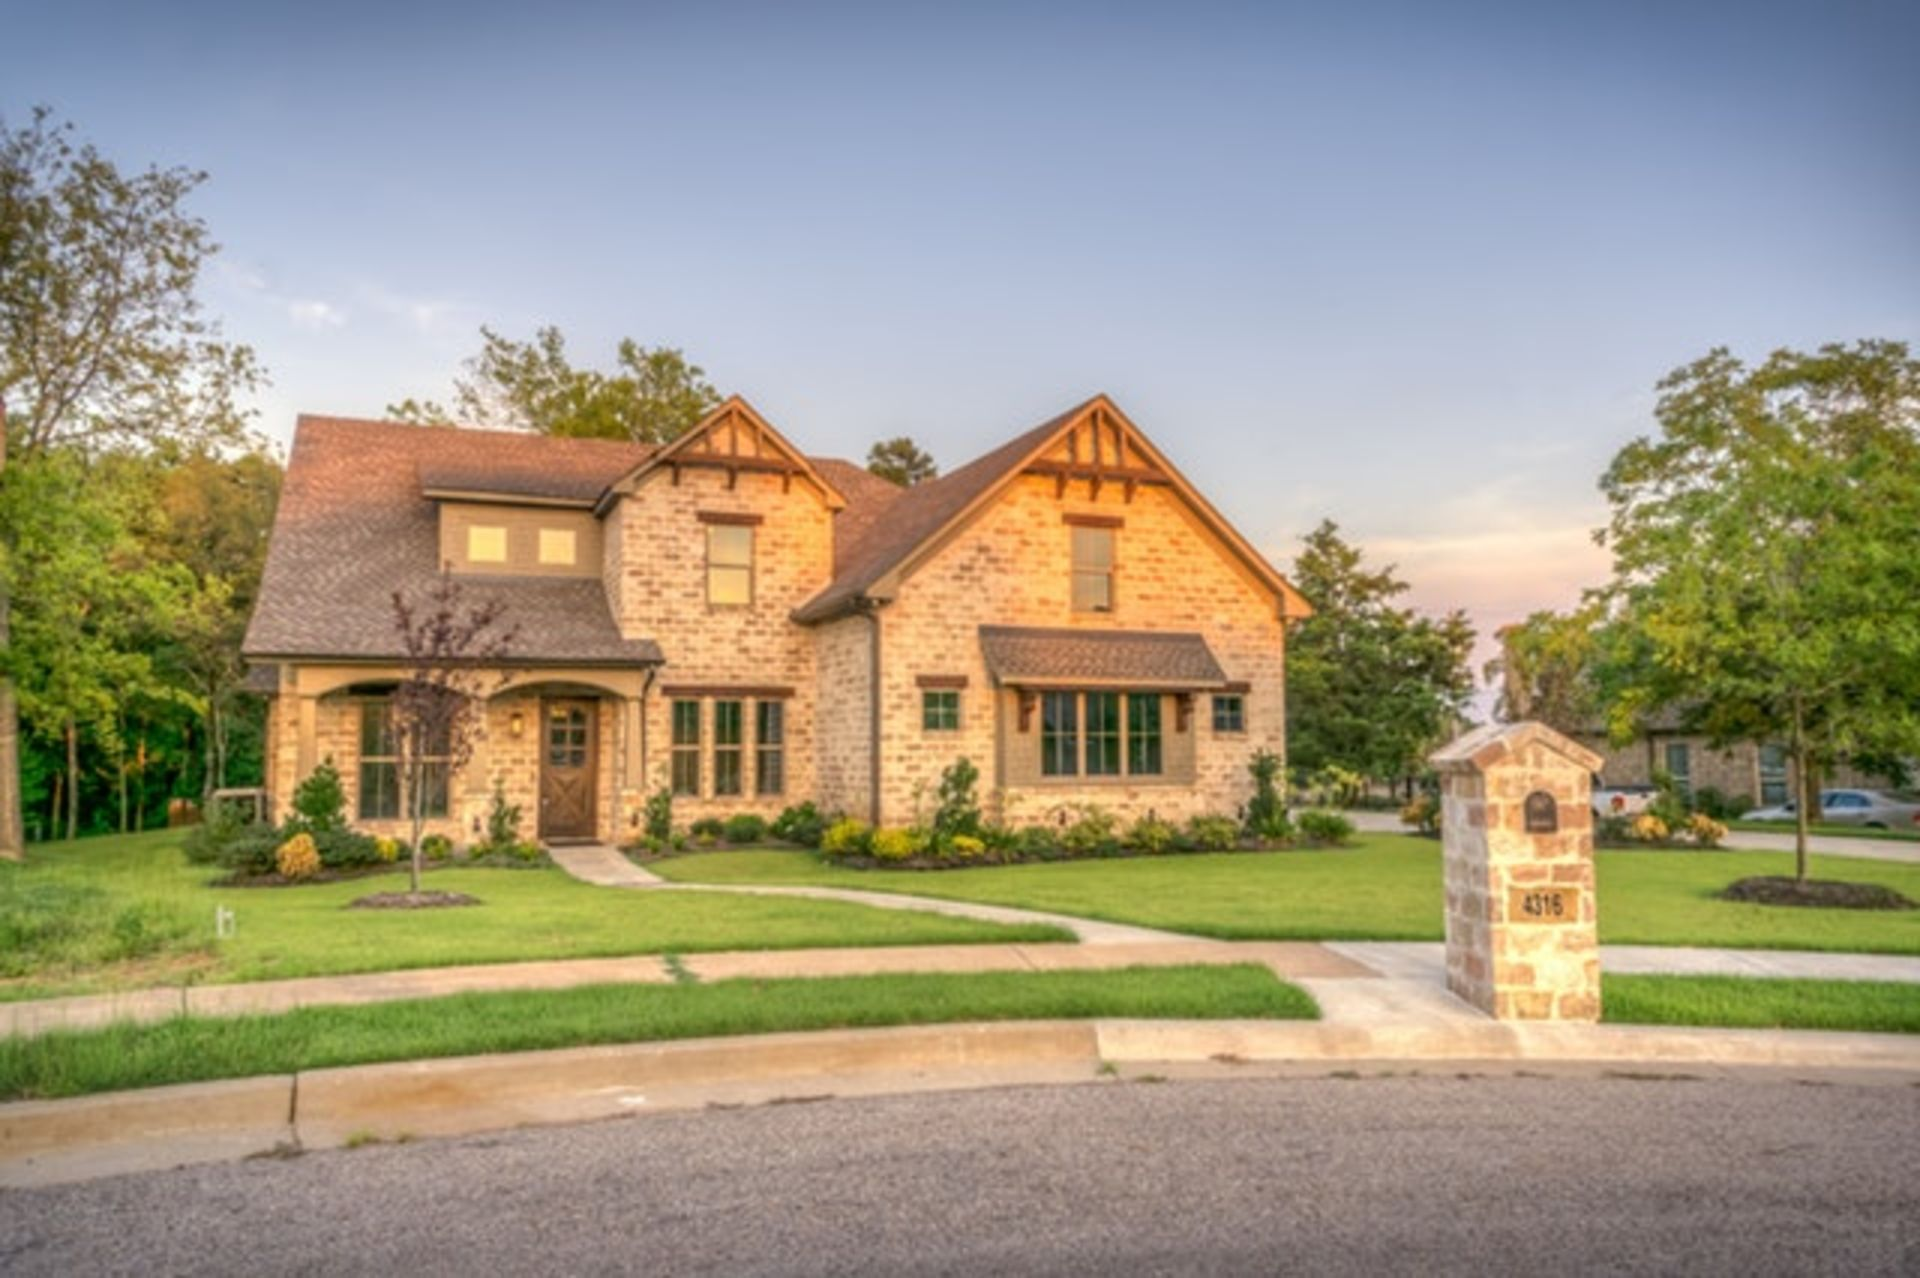 Tips To Enhance Your Home's Curb Appeal